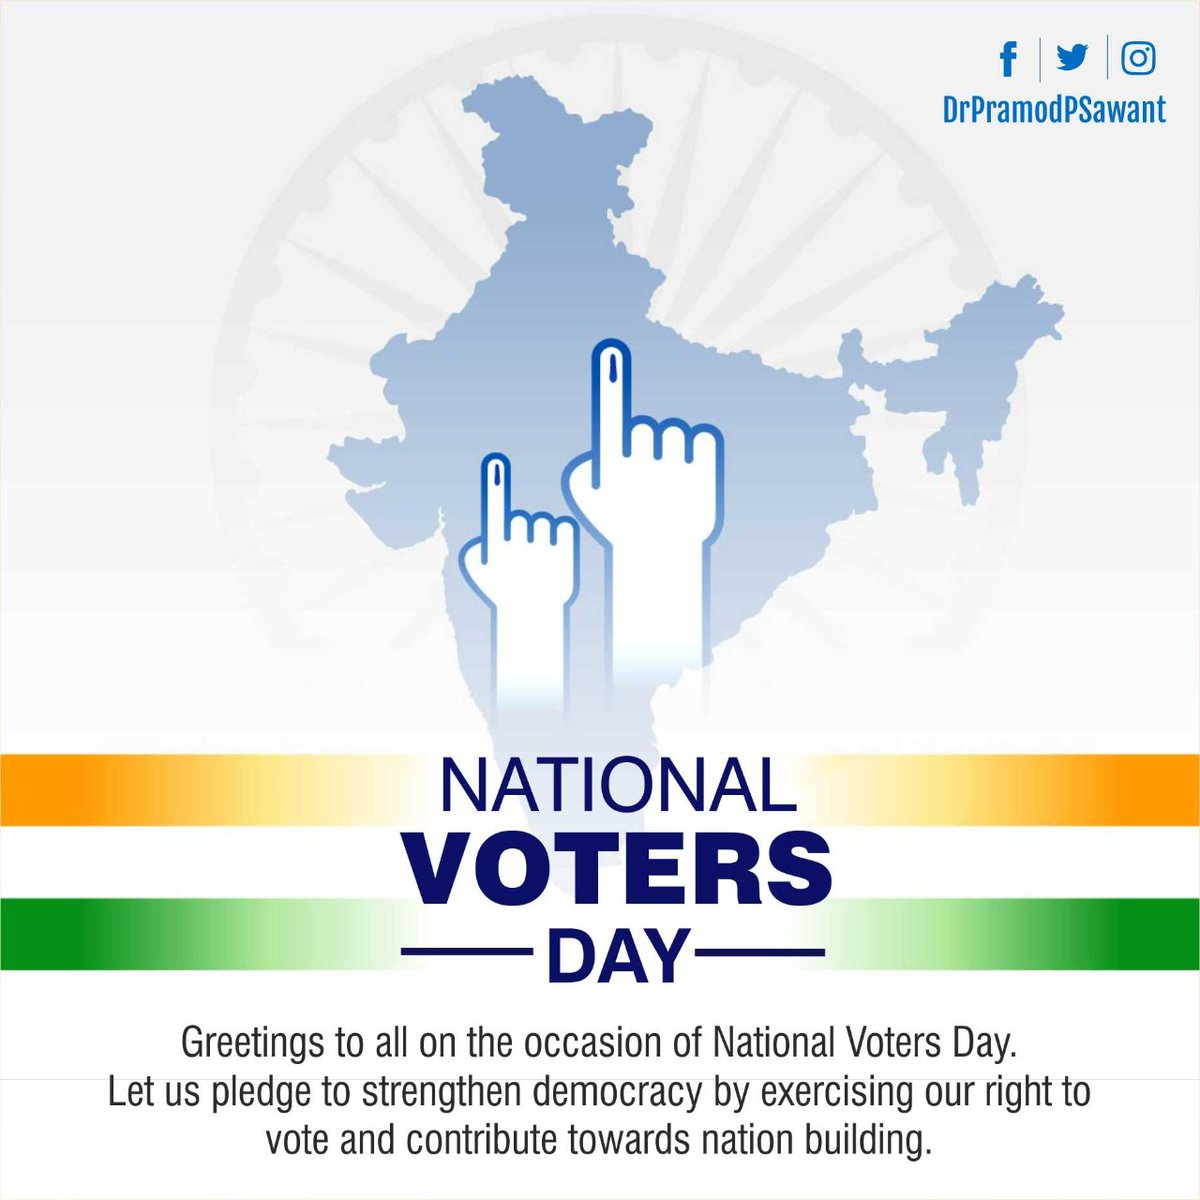 Greetings to all on the occasion of #NationalVotersDay. Let us pledge to strengthen democracy by exercising our right to vote and contribute towards nation building.